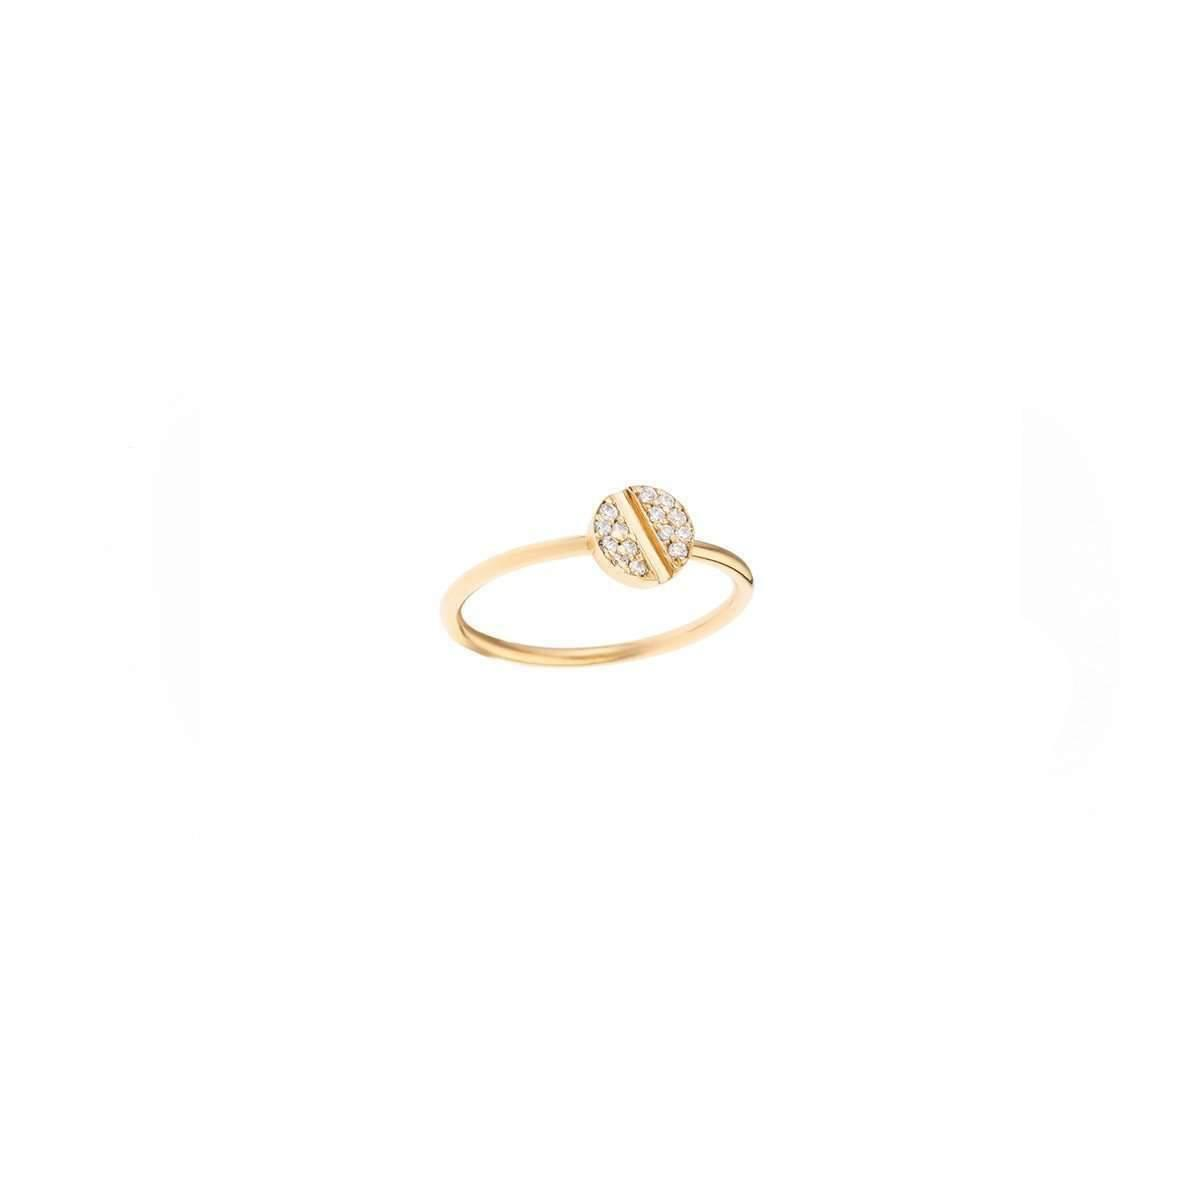 Joanna Laura Constantine Nut Pearl Knuckle Rings - UK G 1/4 - US 3 1/2 - EU 45 3/4 vsUU8bTcM